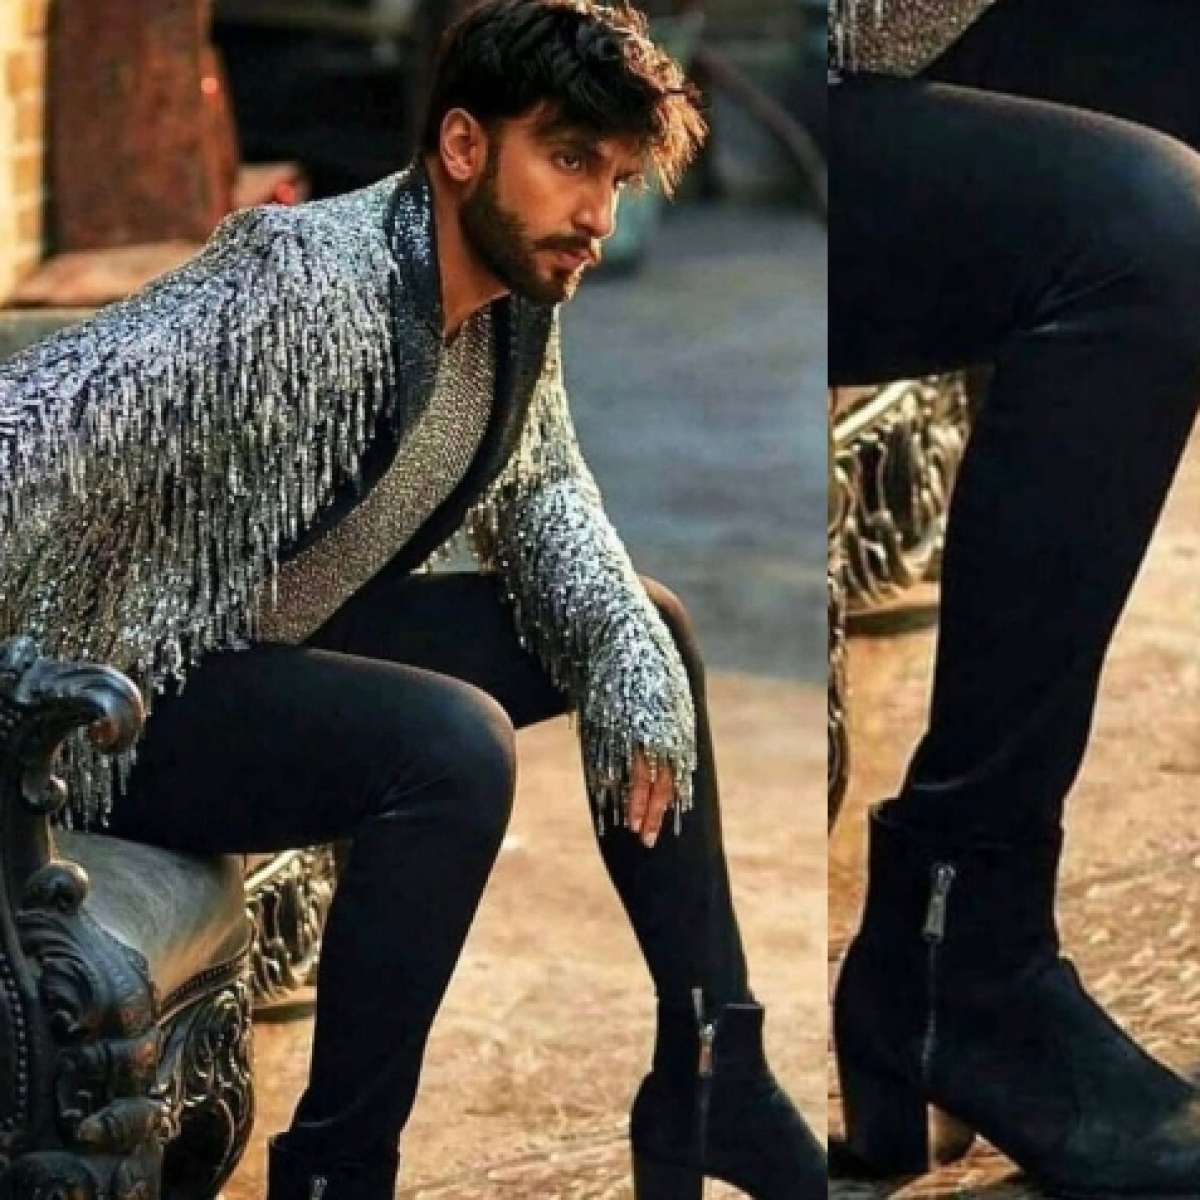 'Going to go Caitlyn Jenner way': Transphobic trolls attack Ranveer Singh for wearing heels as old pic goes viral